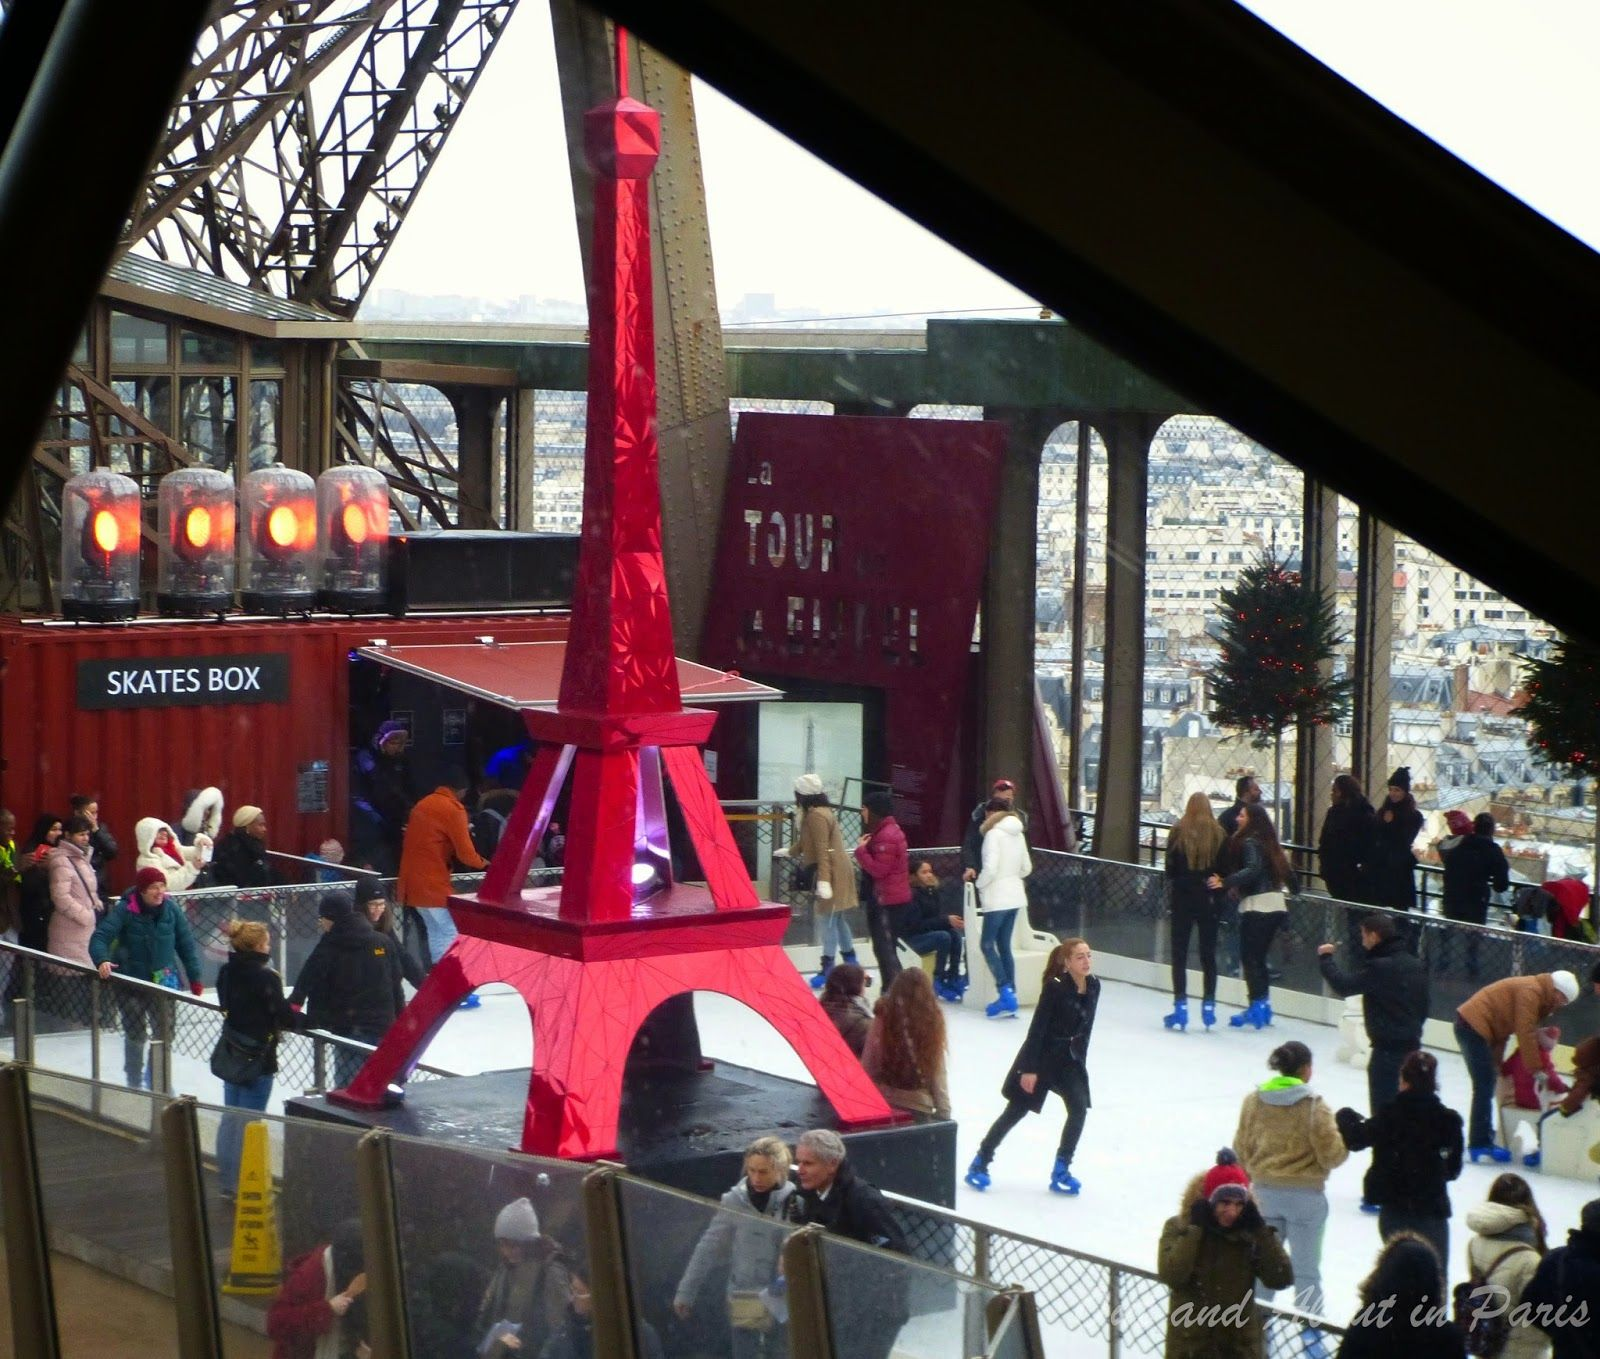 Out and About in Paris: Ice skating on the Eiffel Tower! One of the cooles...